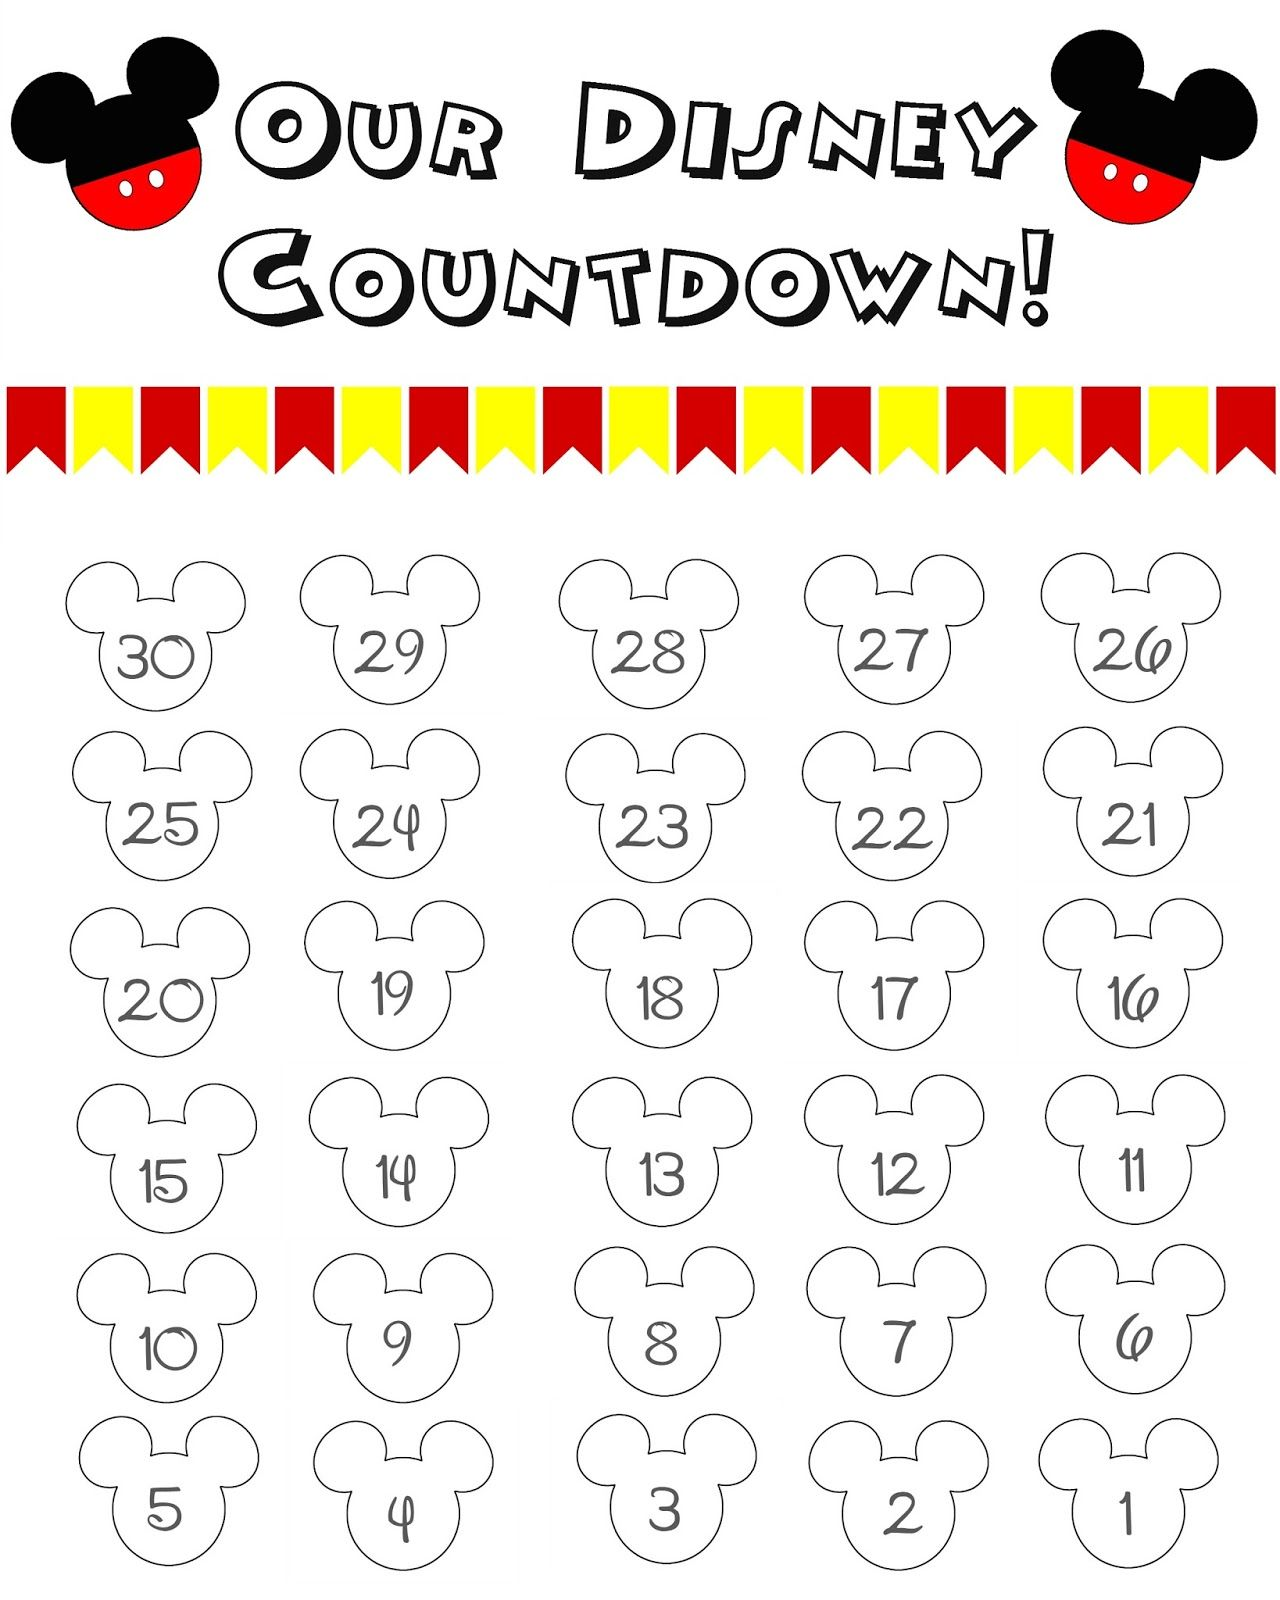 graphic regarding Disney Printable Calendar identified as Disney World wide Countdown Calendar - Absolutely free Printable The Momma